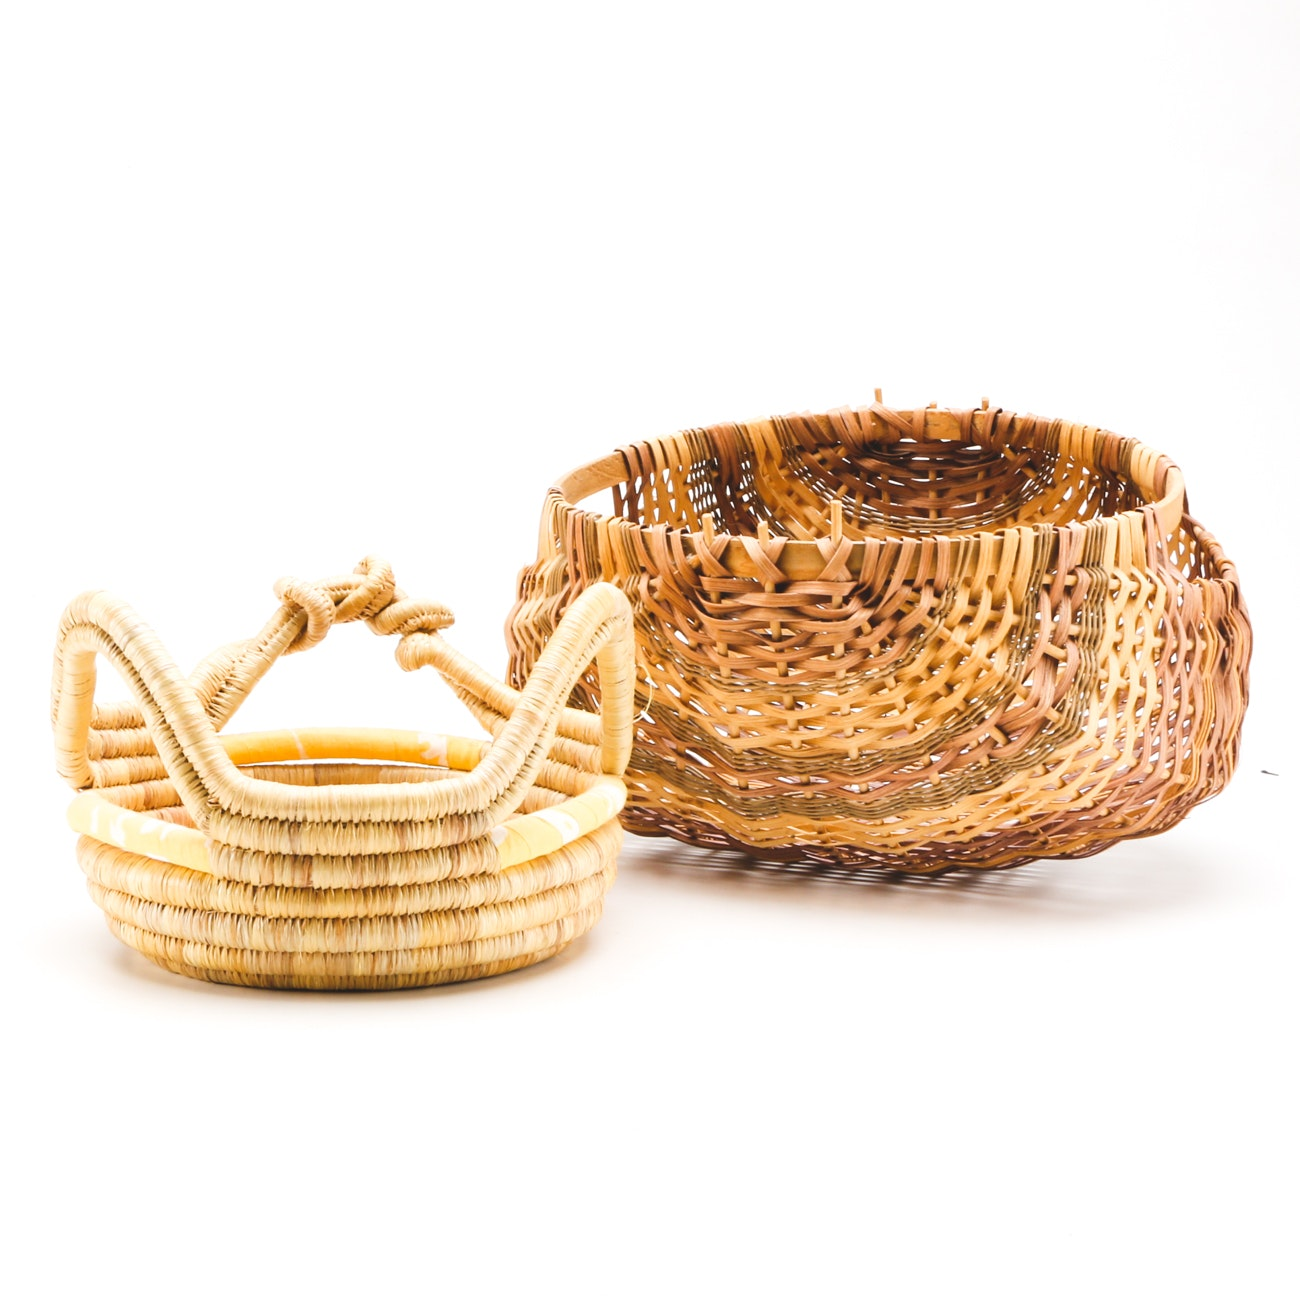 Decorative Woven Baskets